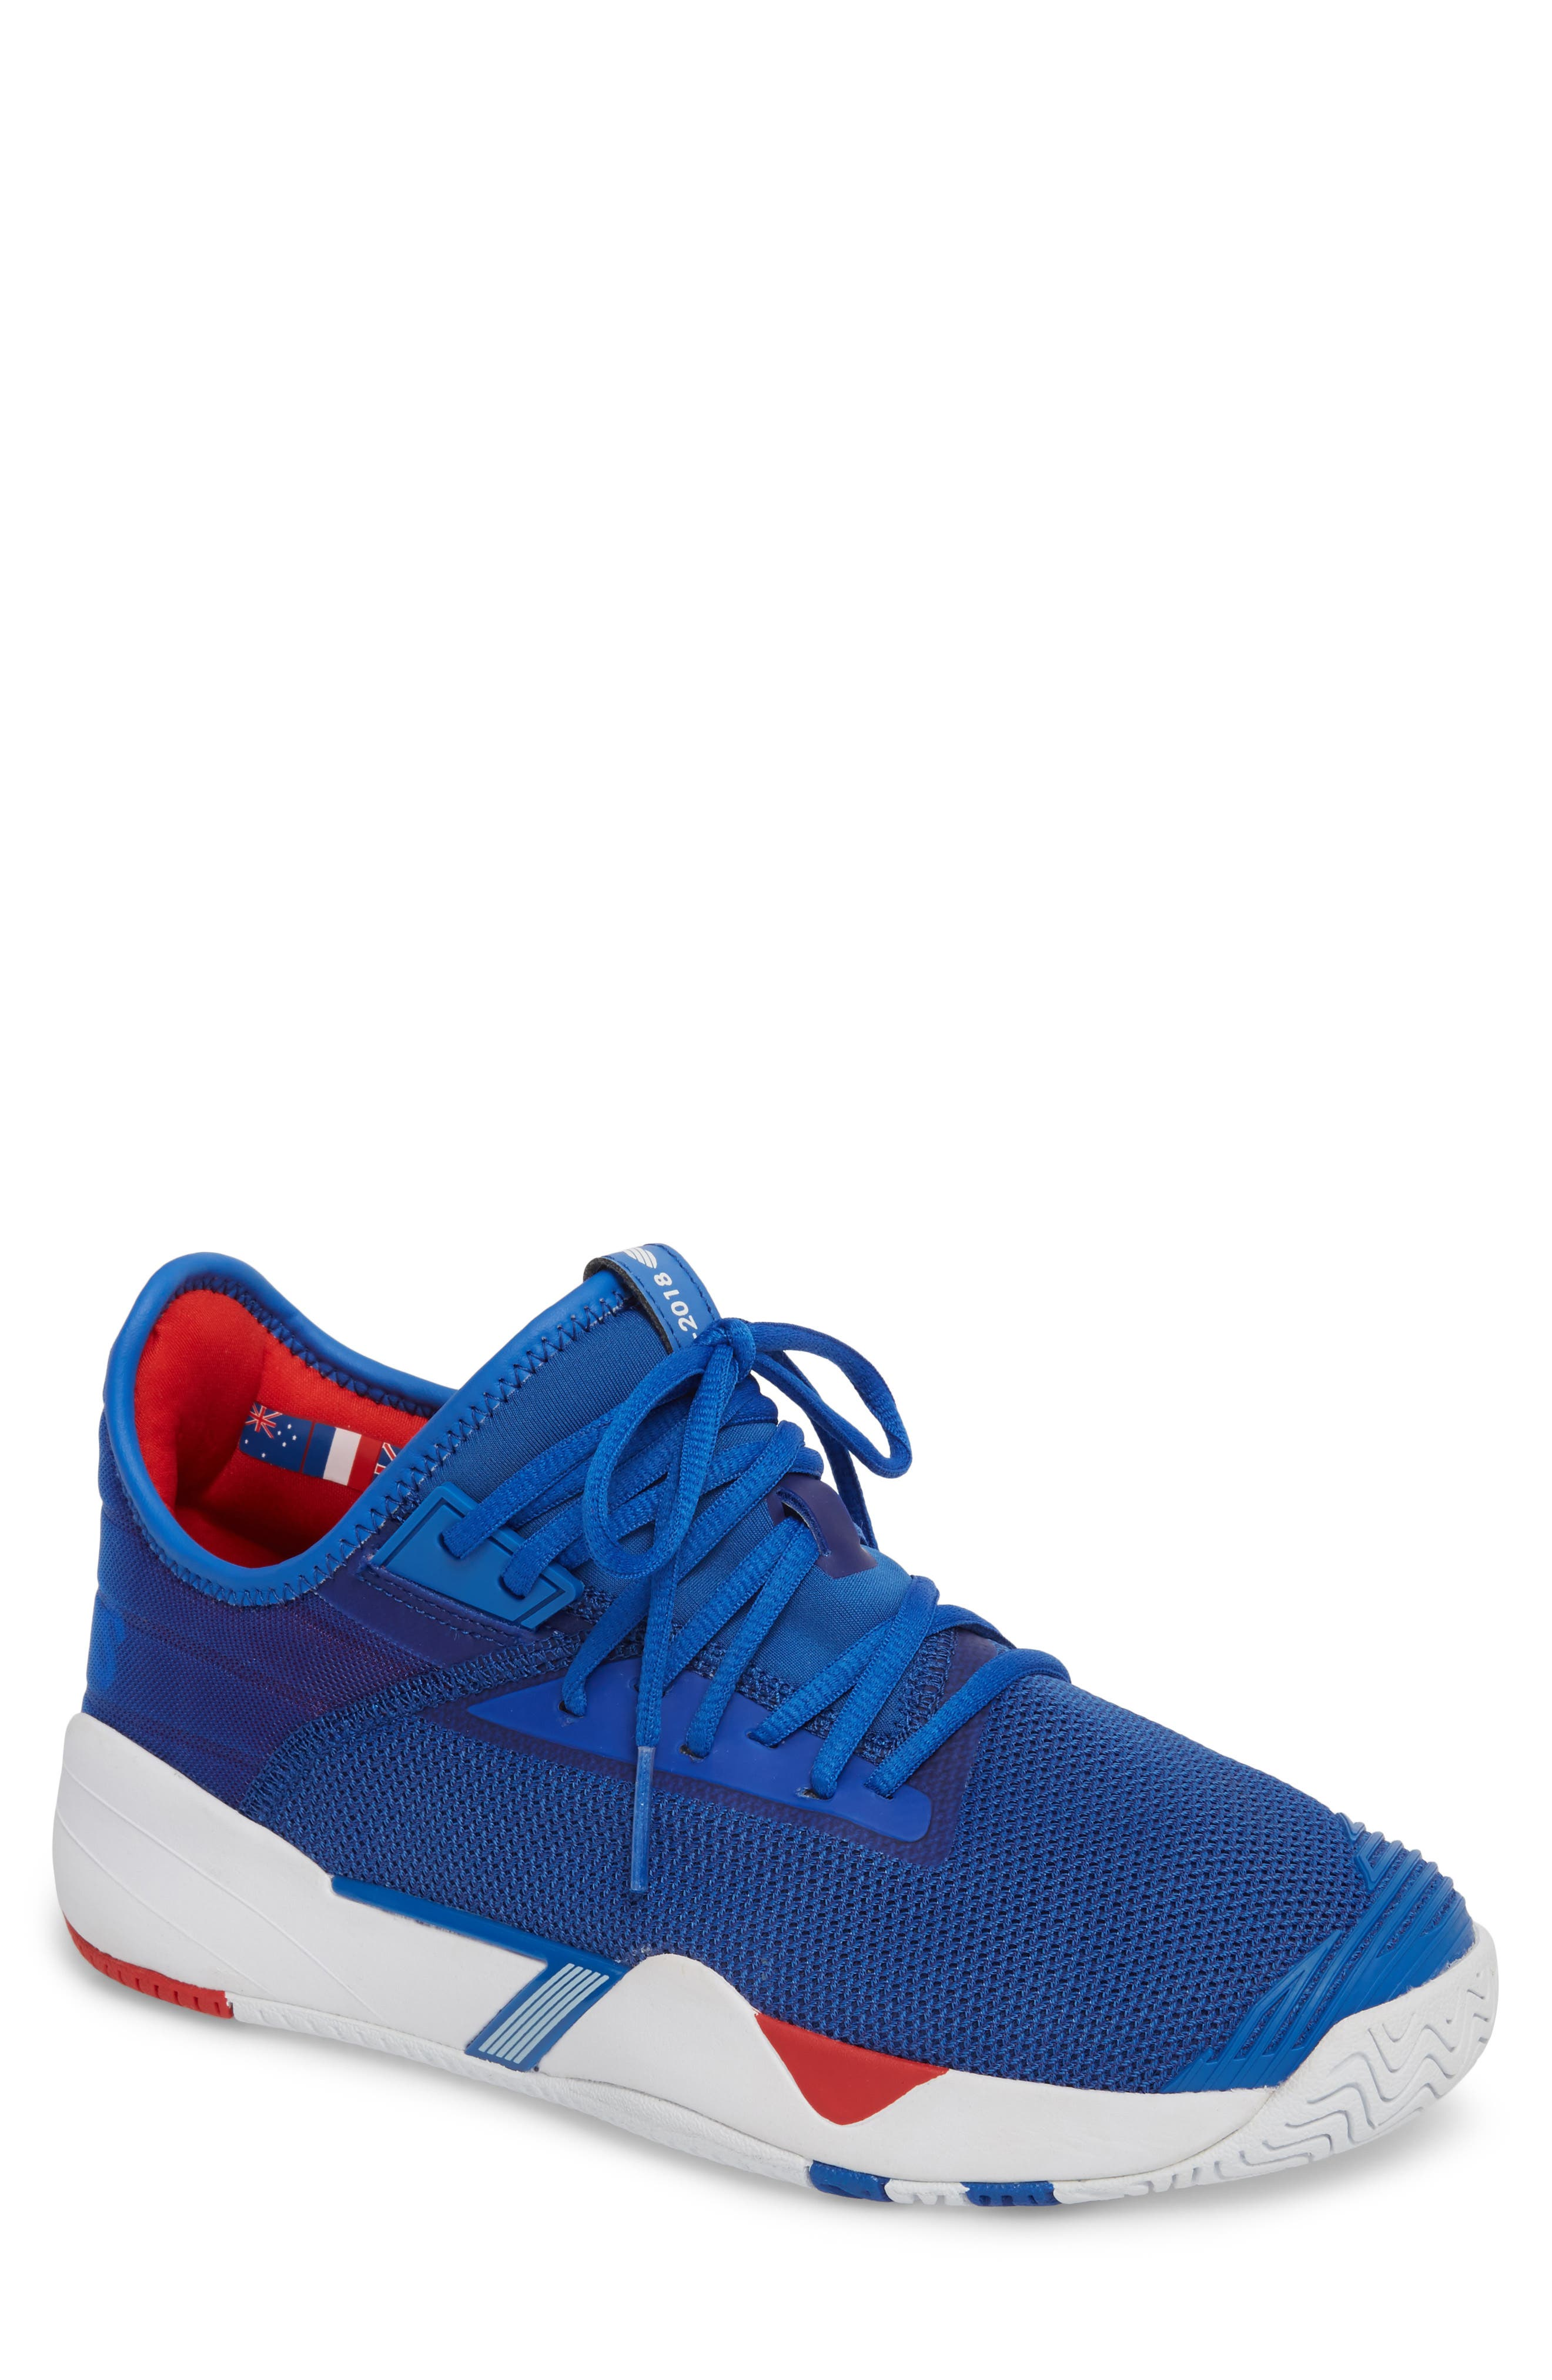 K-SWISS Si-2018 Mid Top Sneaker in Strong Blue/White/ Red